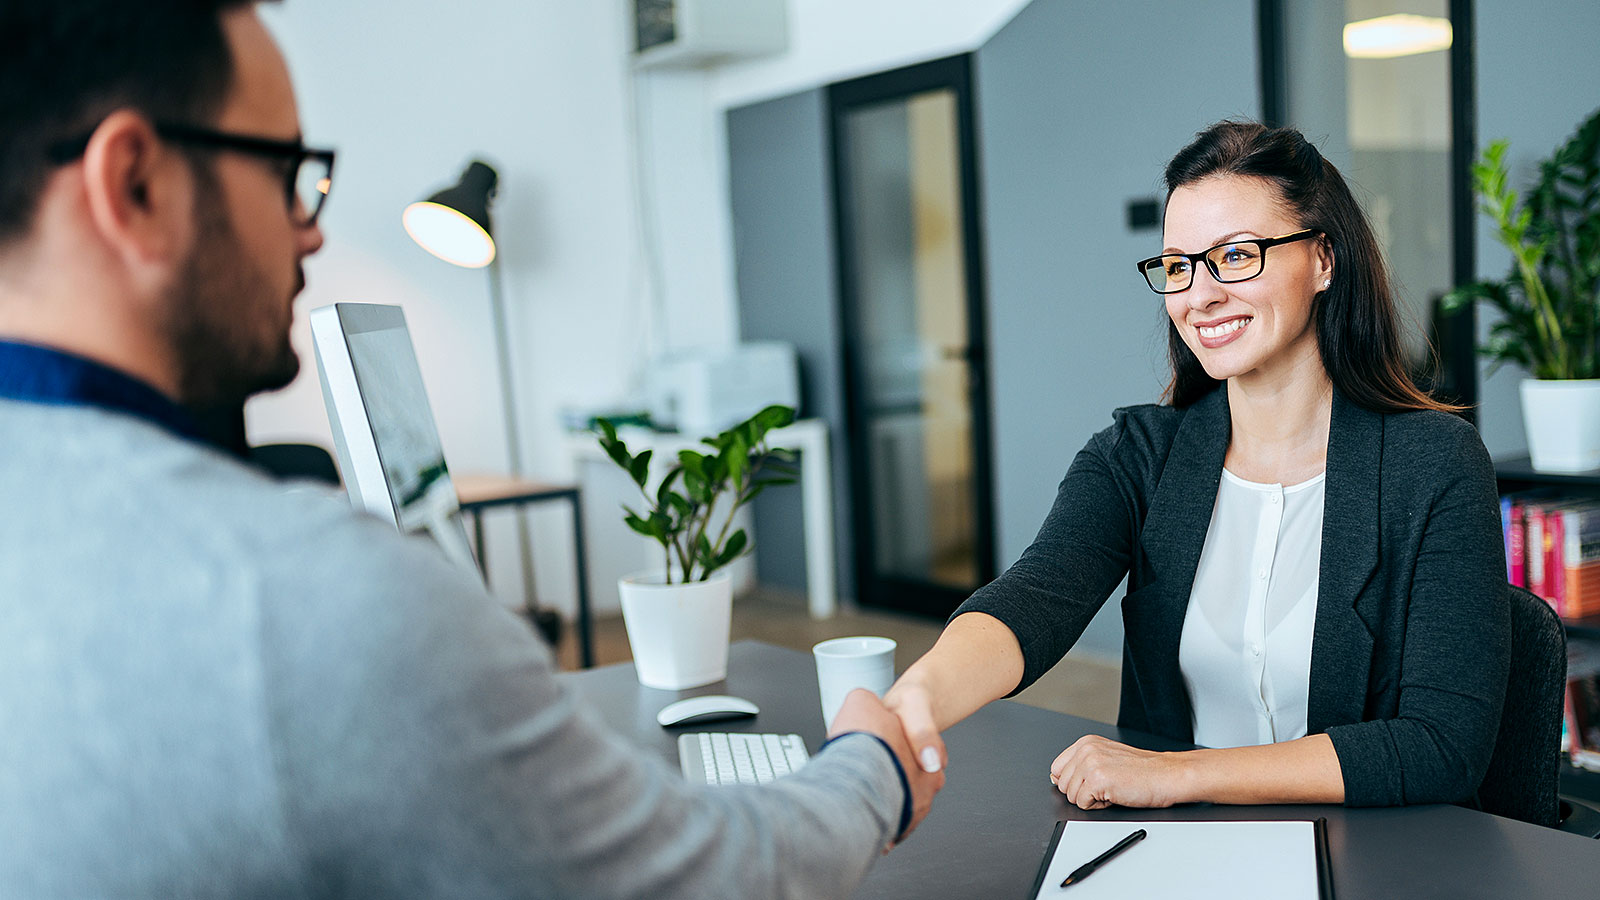 6 job search tips to consider that will enhance your success